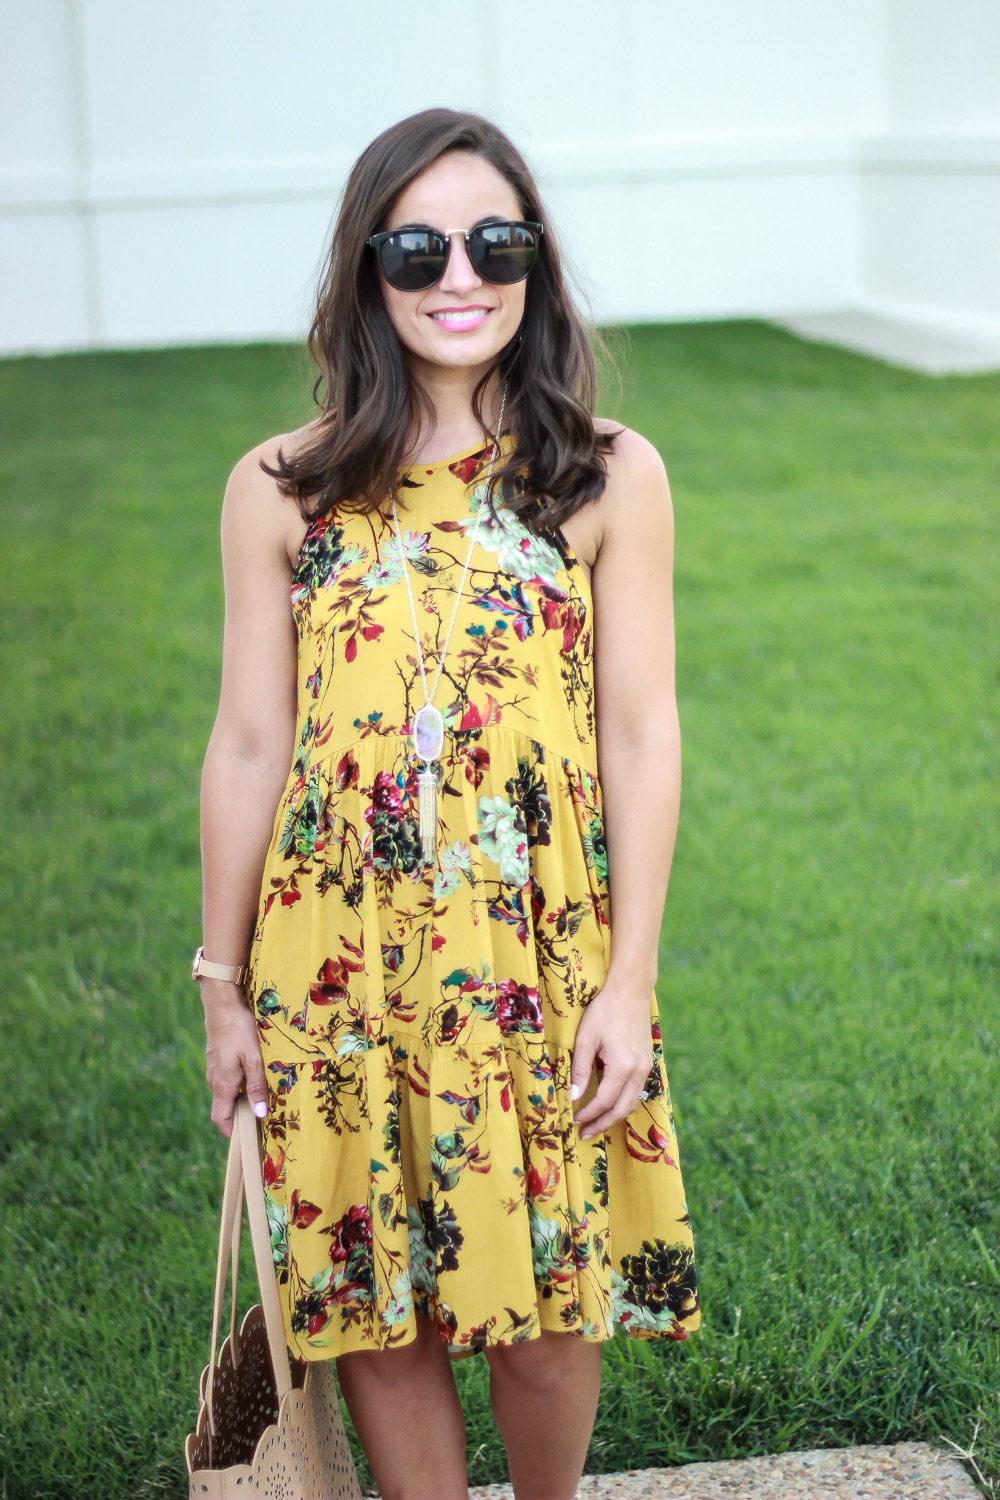 Floral dress outfit from PinkBlush